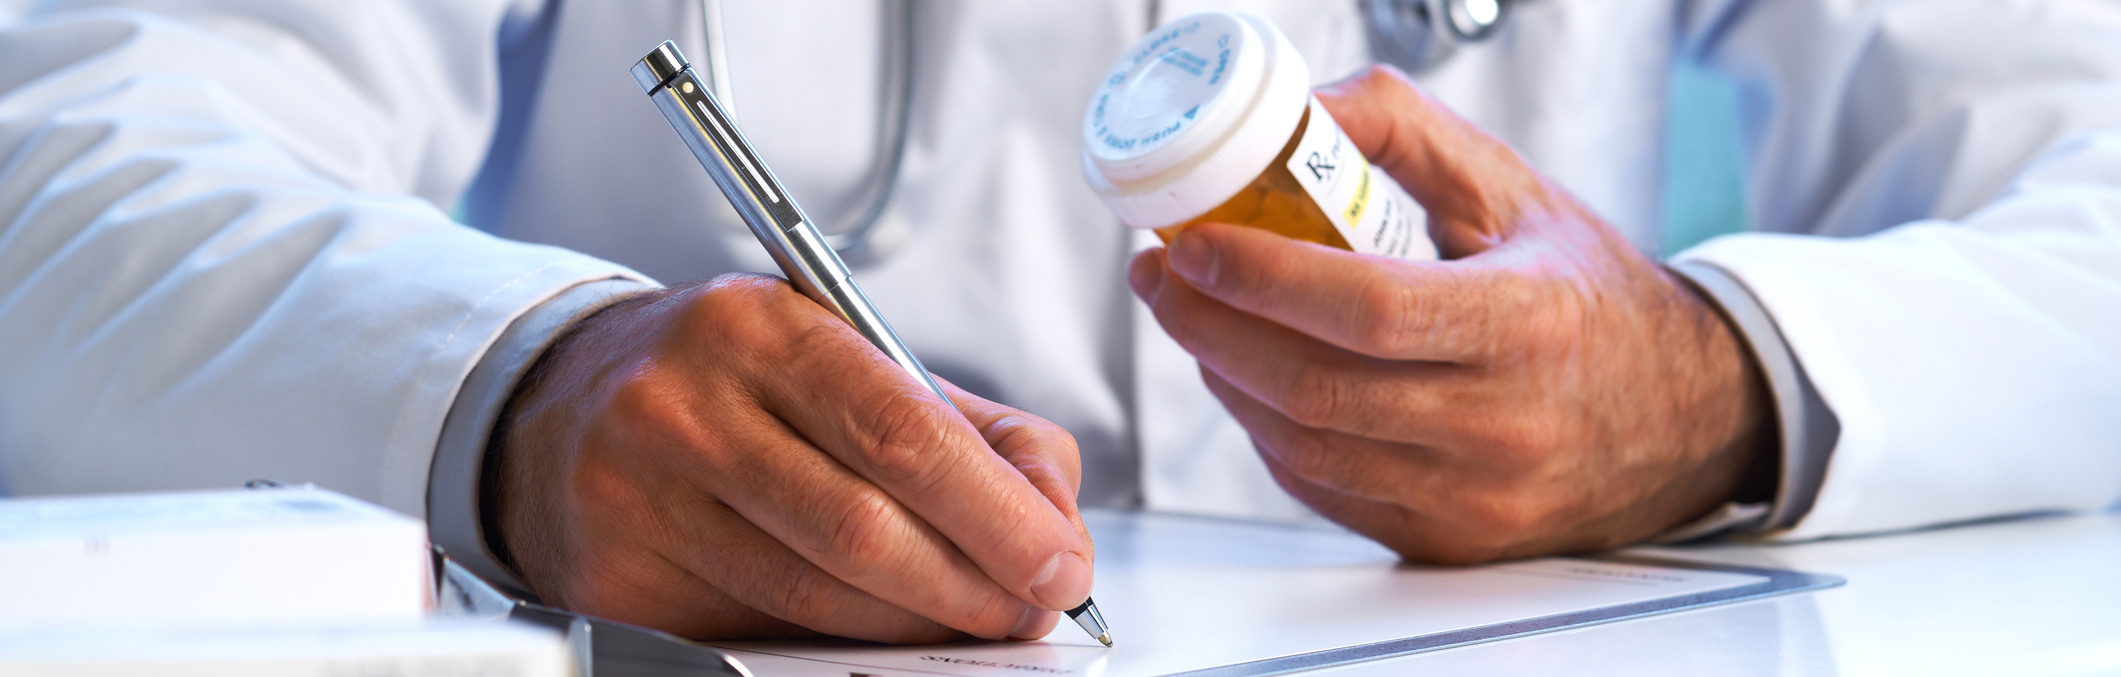 Doctor prescribing medication